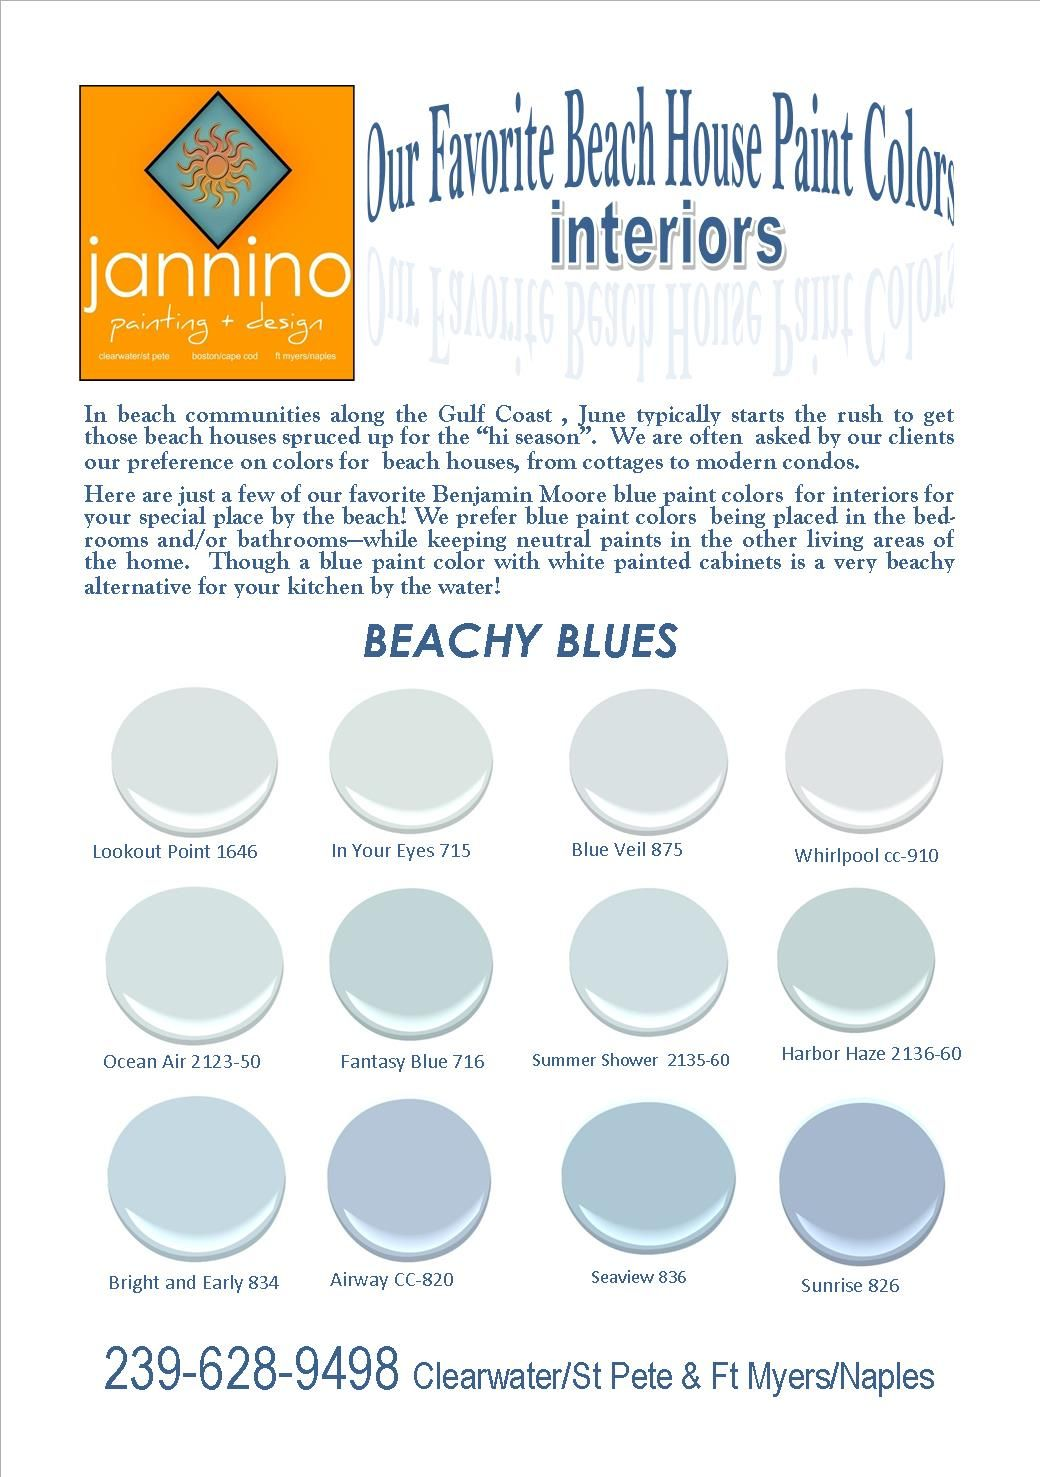 I M Thinking Pale Blues For New Living Room And Or Kitchen Walls